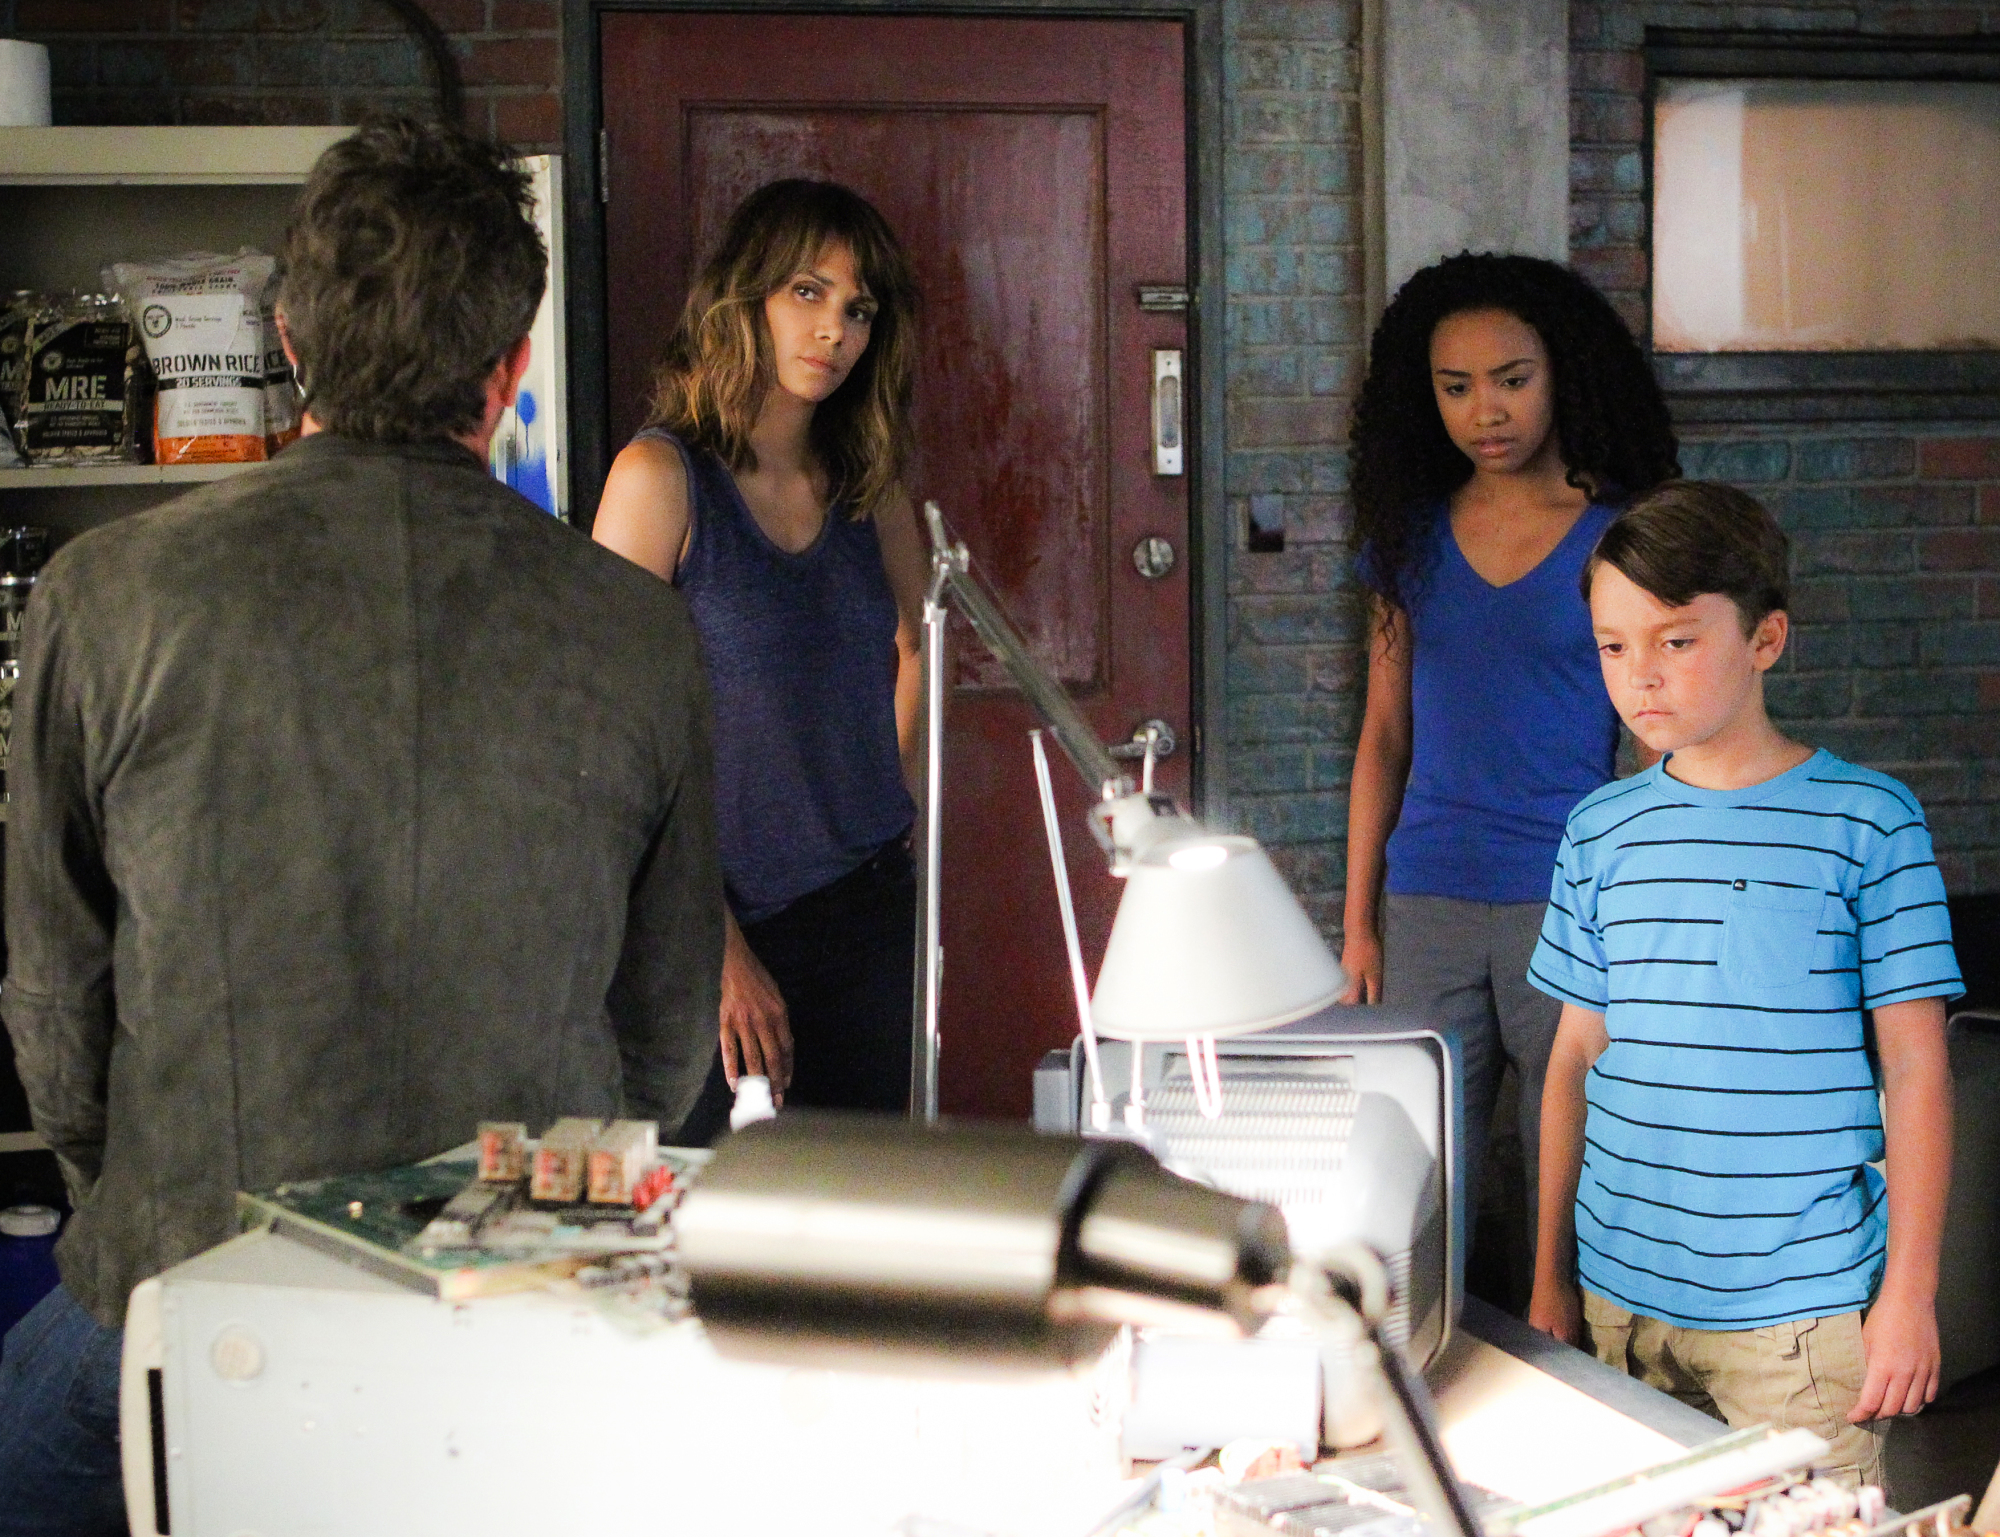 Jeffrey Dean Morgan as JD Richter, Halle Berry as Molly Woods, McKenna Roberts as Terra, and Pierce Gagnon as Ethan Woods.